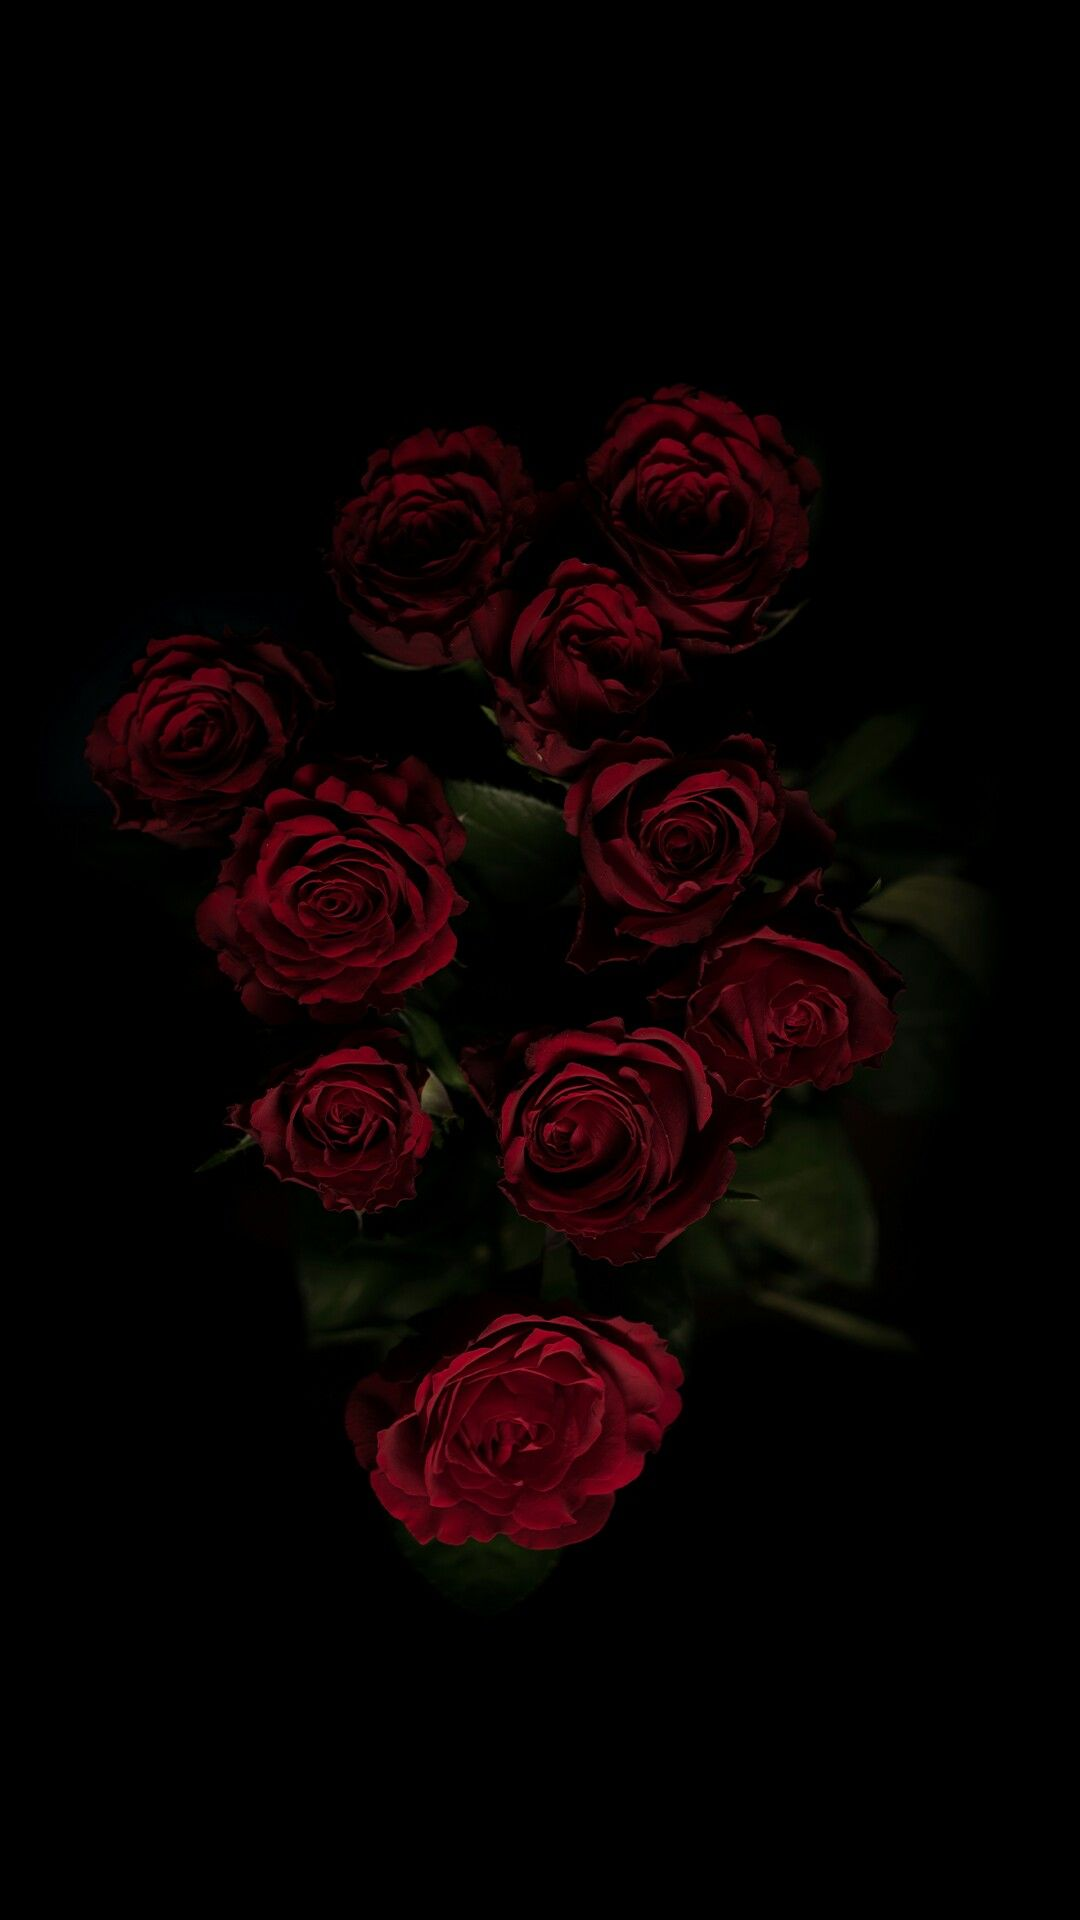 Black Rose Nature Iphone Wallpaper Rose Wallpaper Black Background Wallpaper